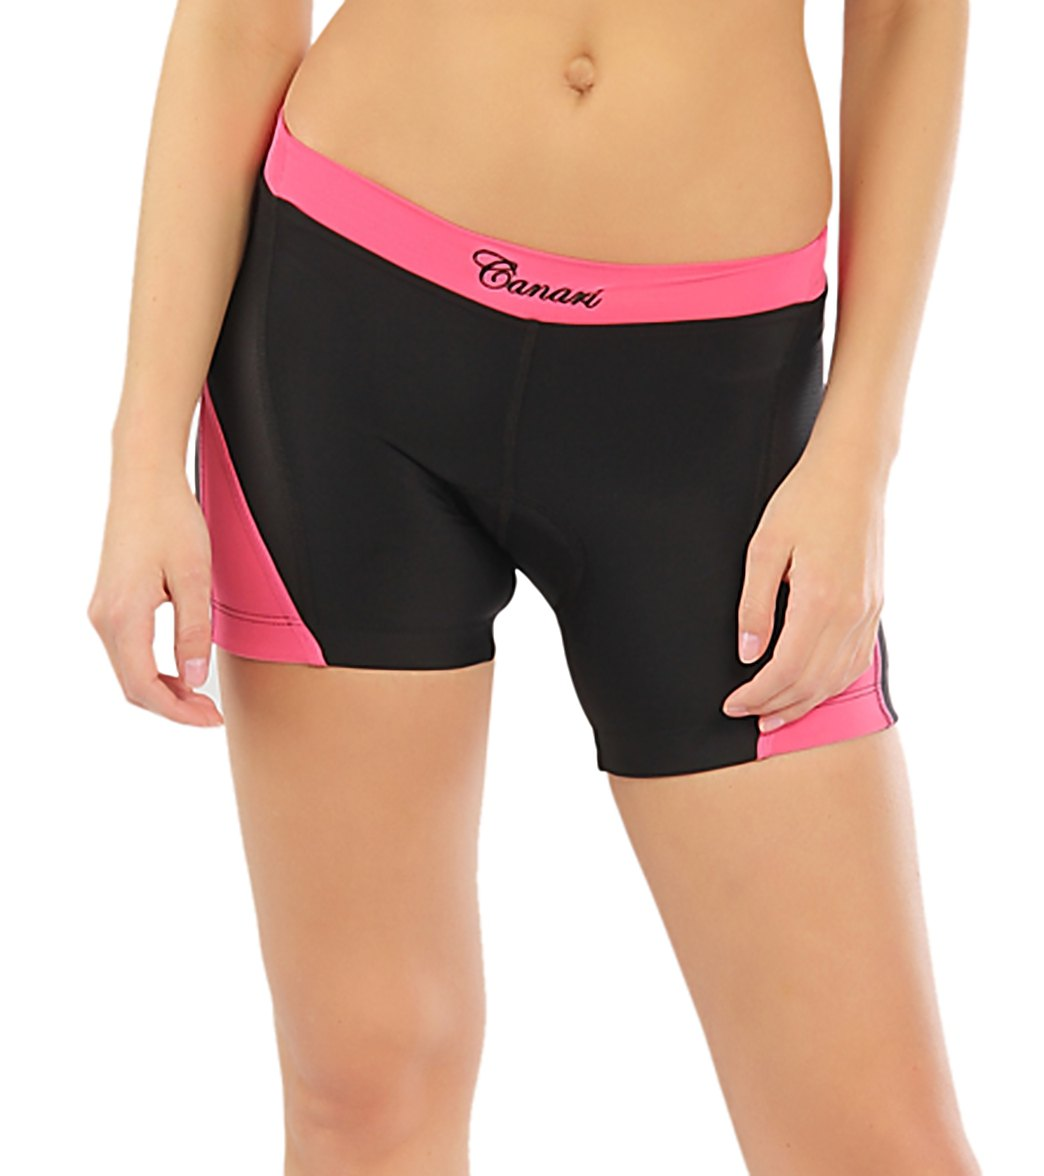 Canari Women s Hybrid Extra Cycling Shorts at SwimOutlet.com - Free ... 5d512a82b